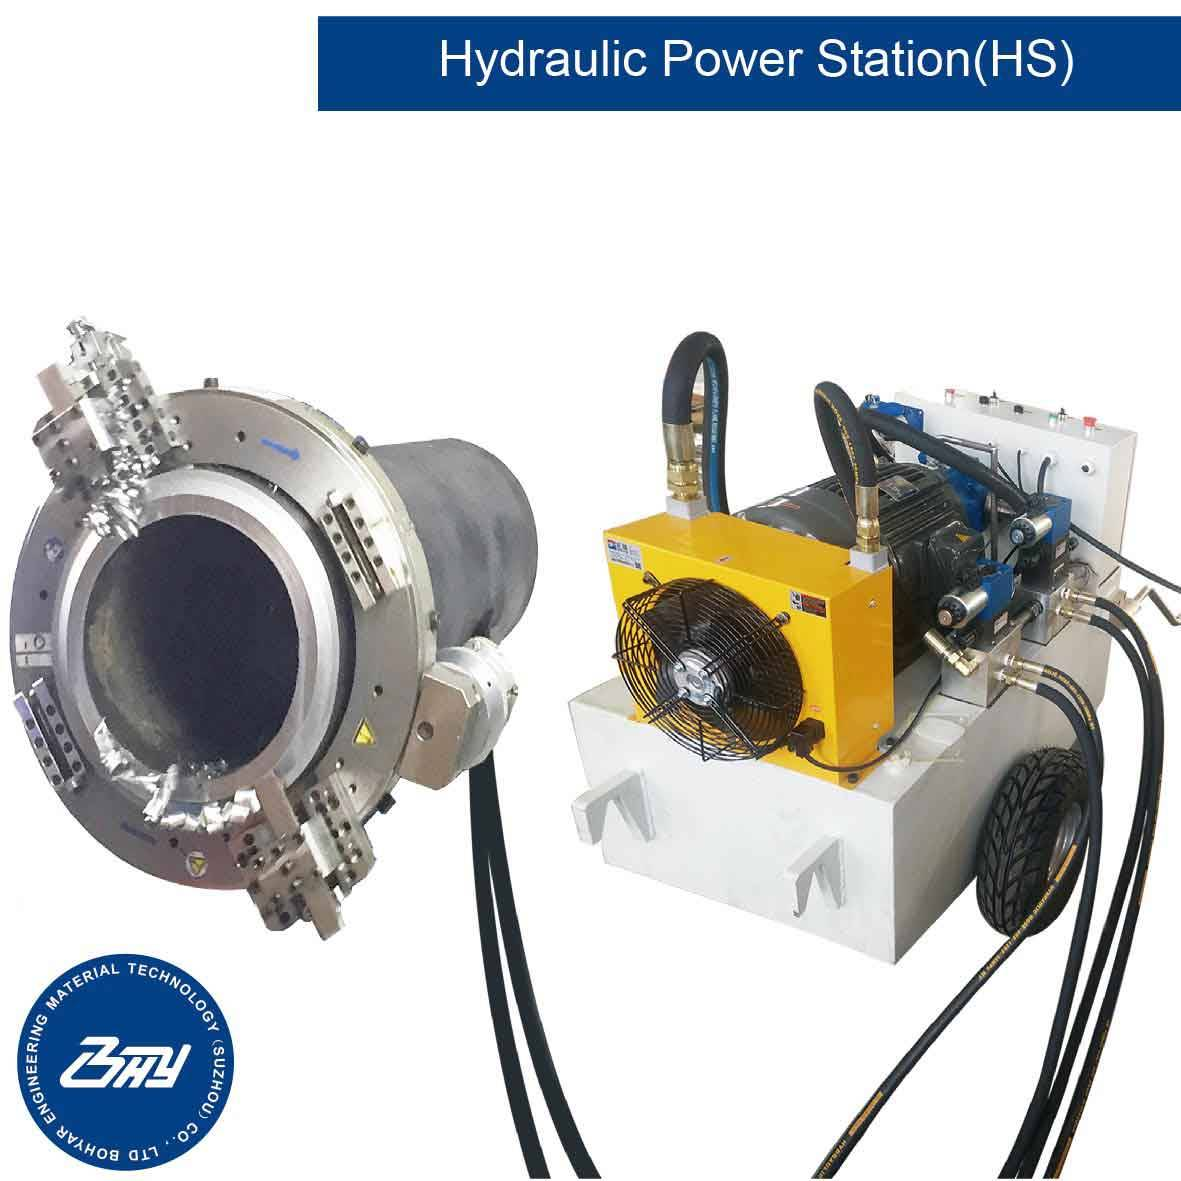 Hydraulic Power Station/Power Unit (HS Series)